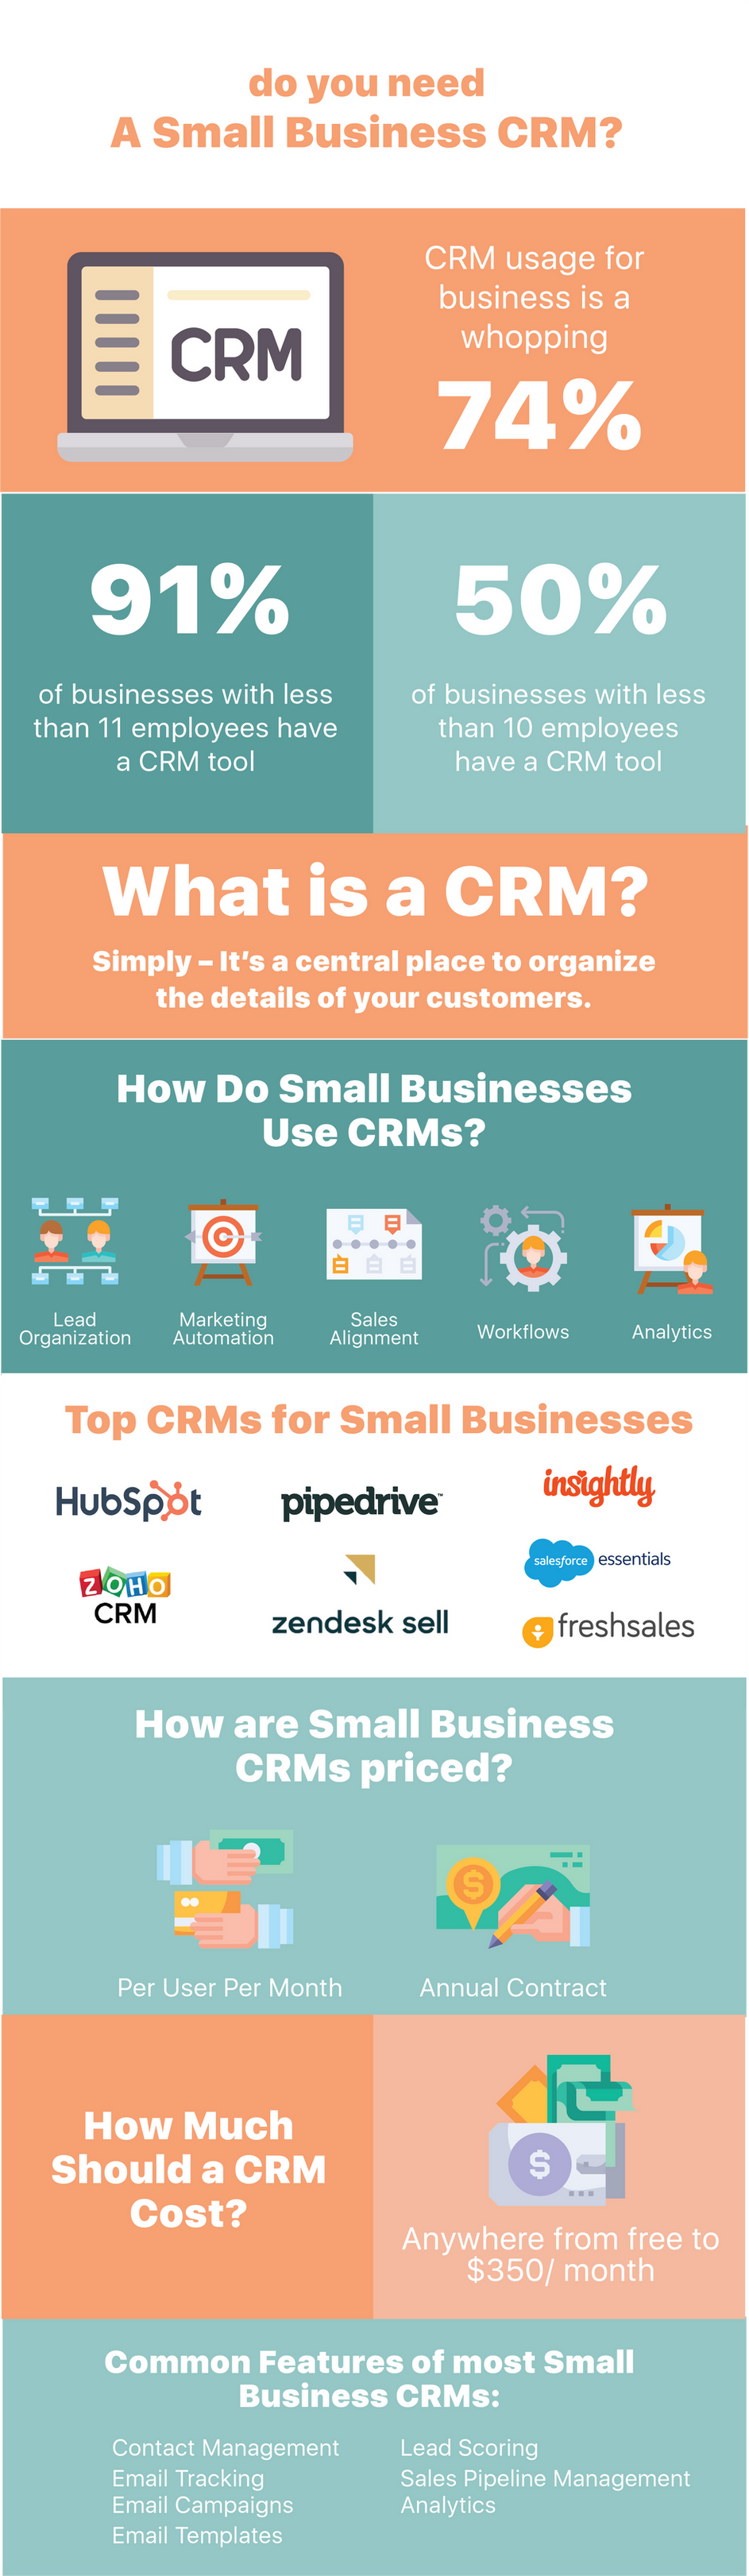 Do You Need a CRM?